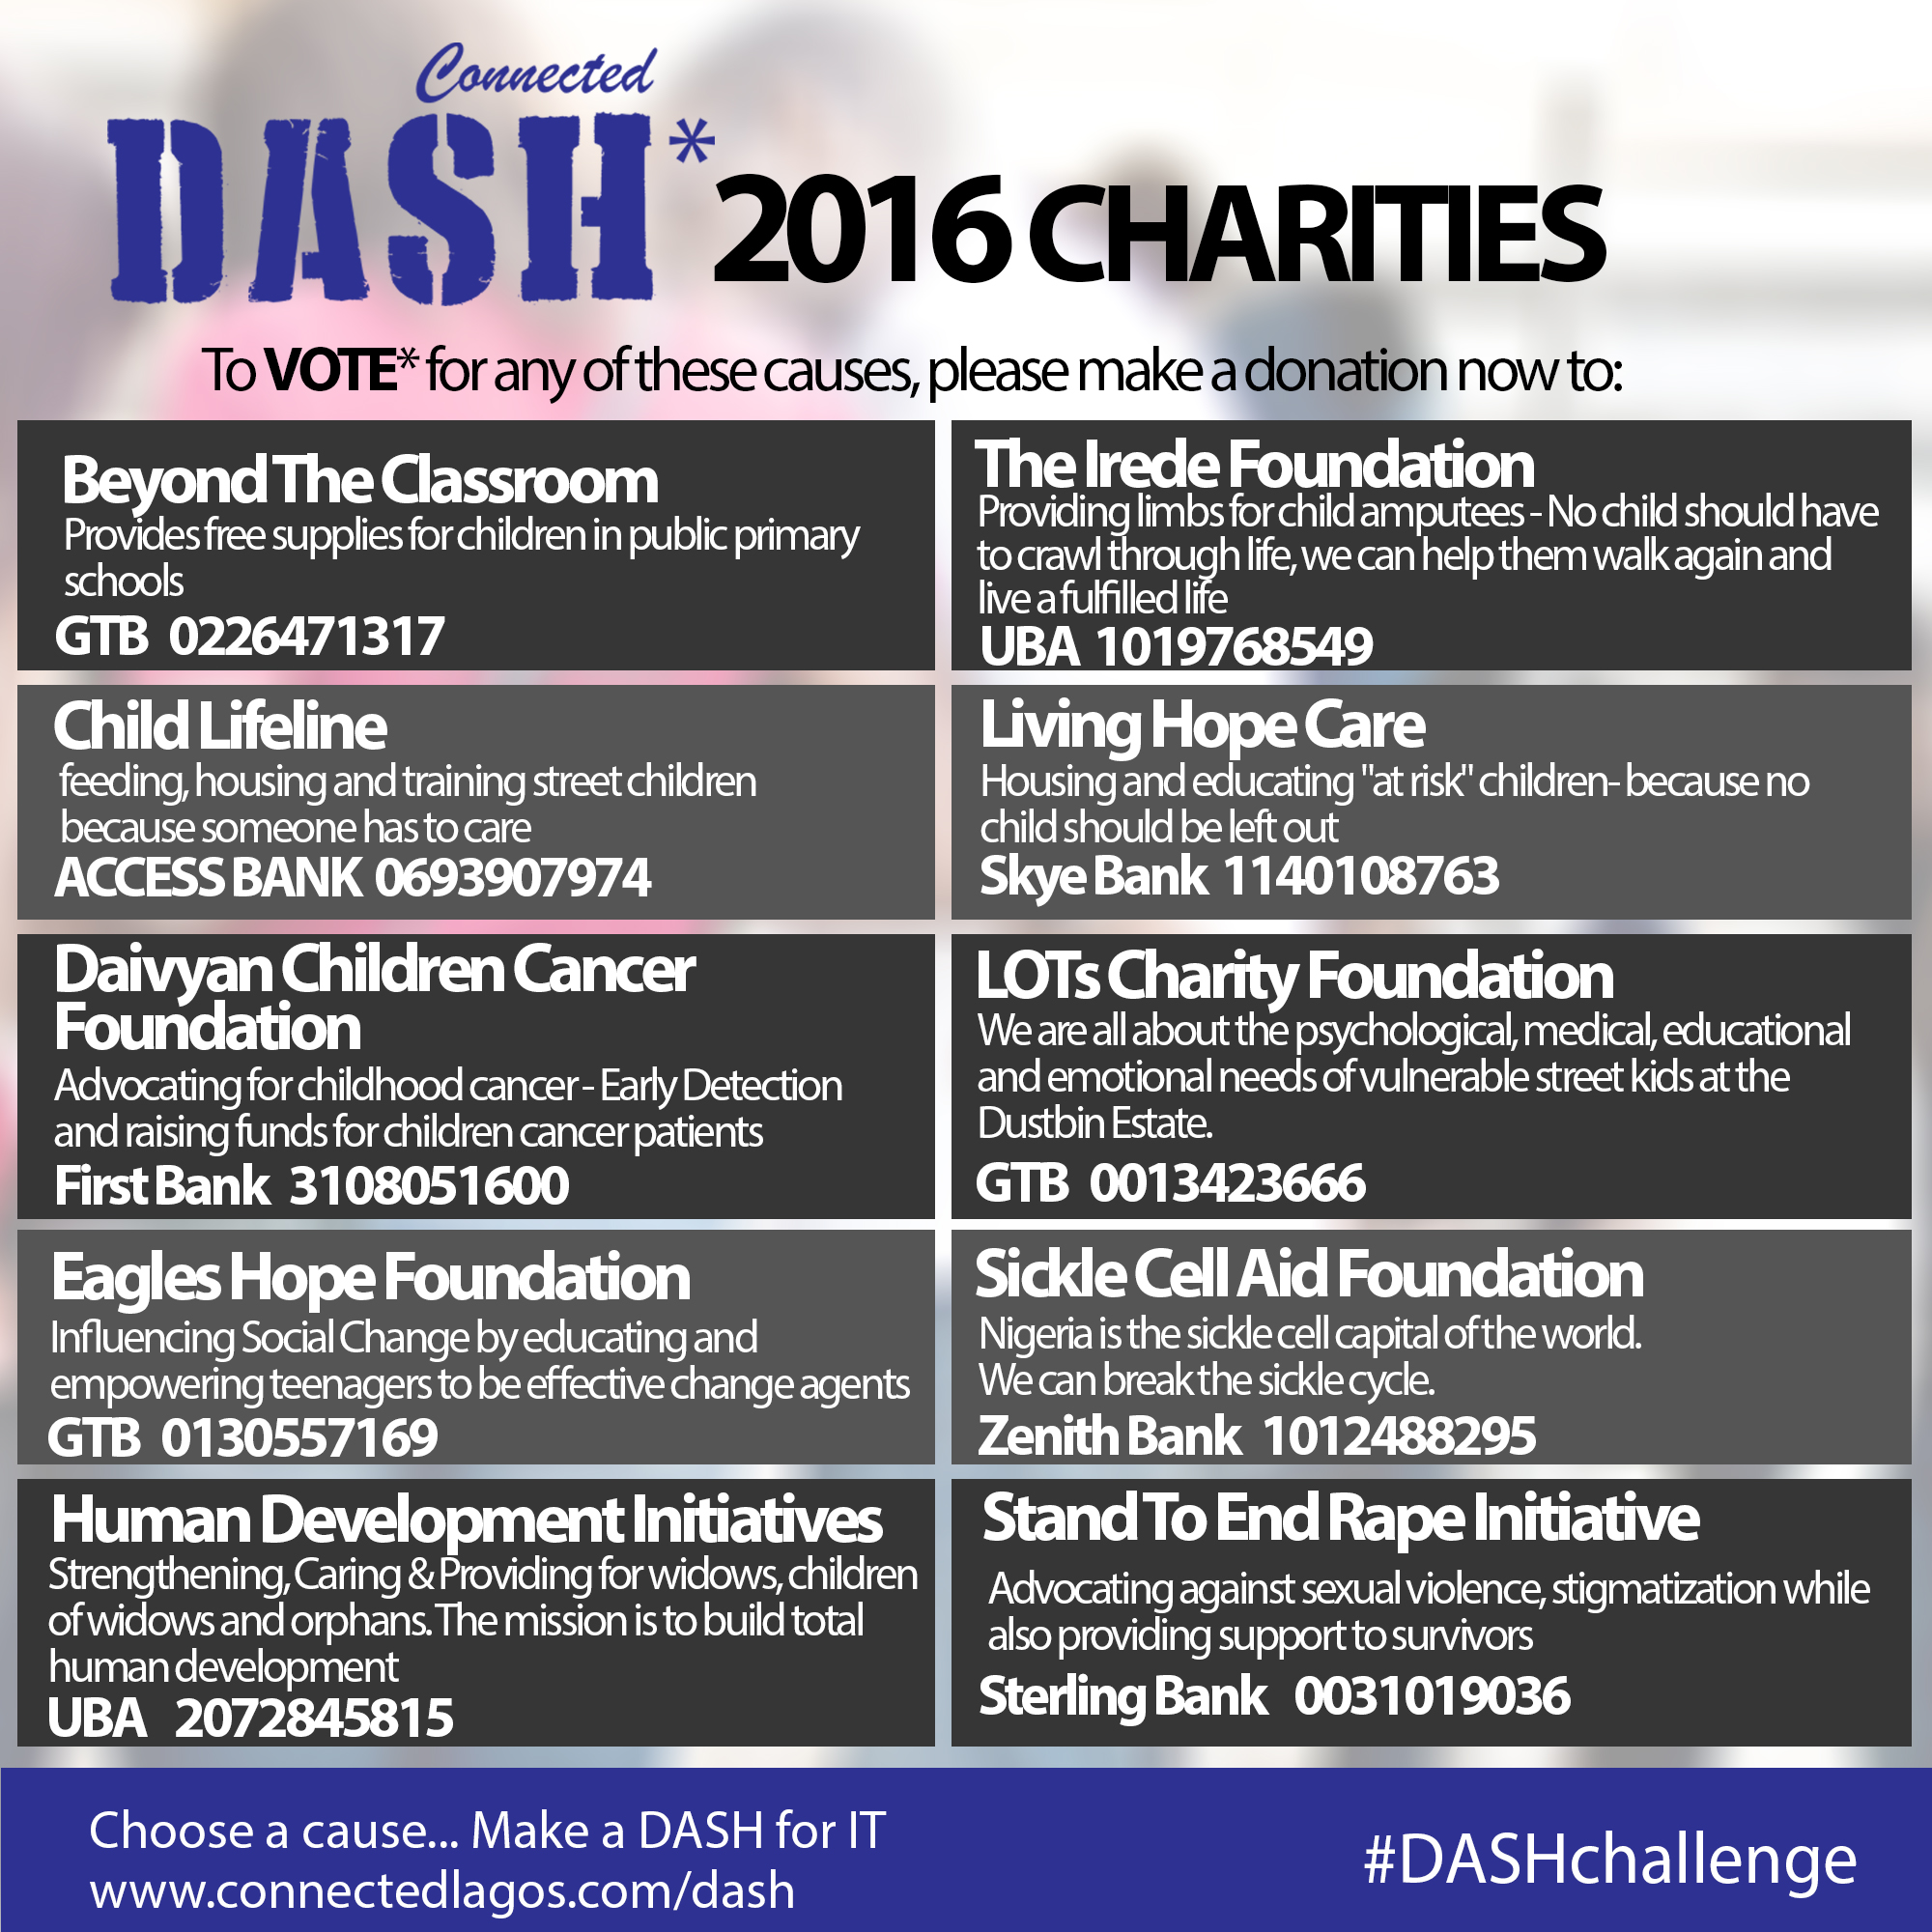 Connected DASH Charities